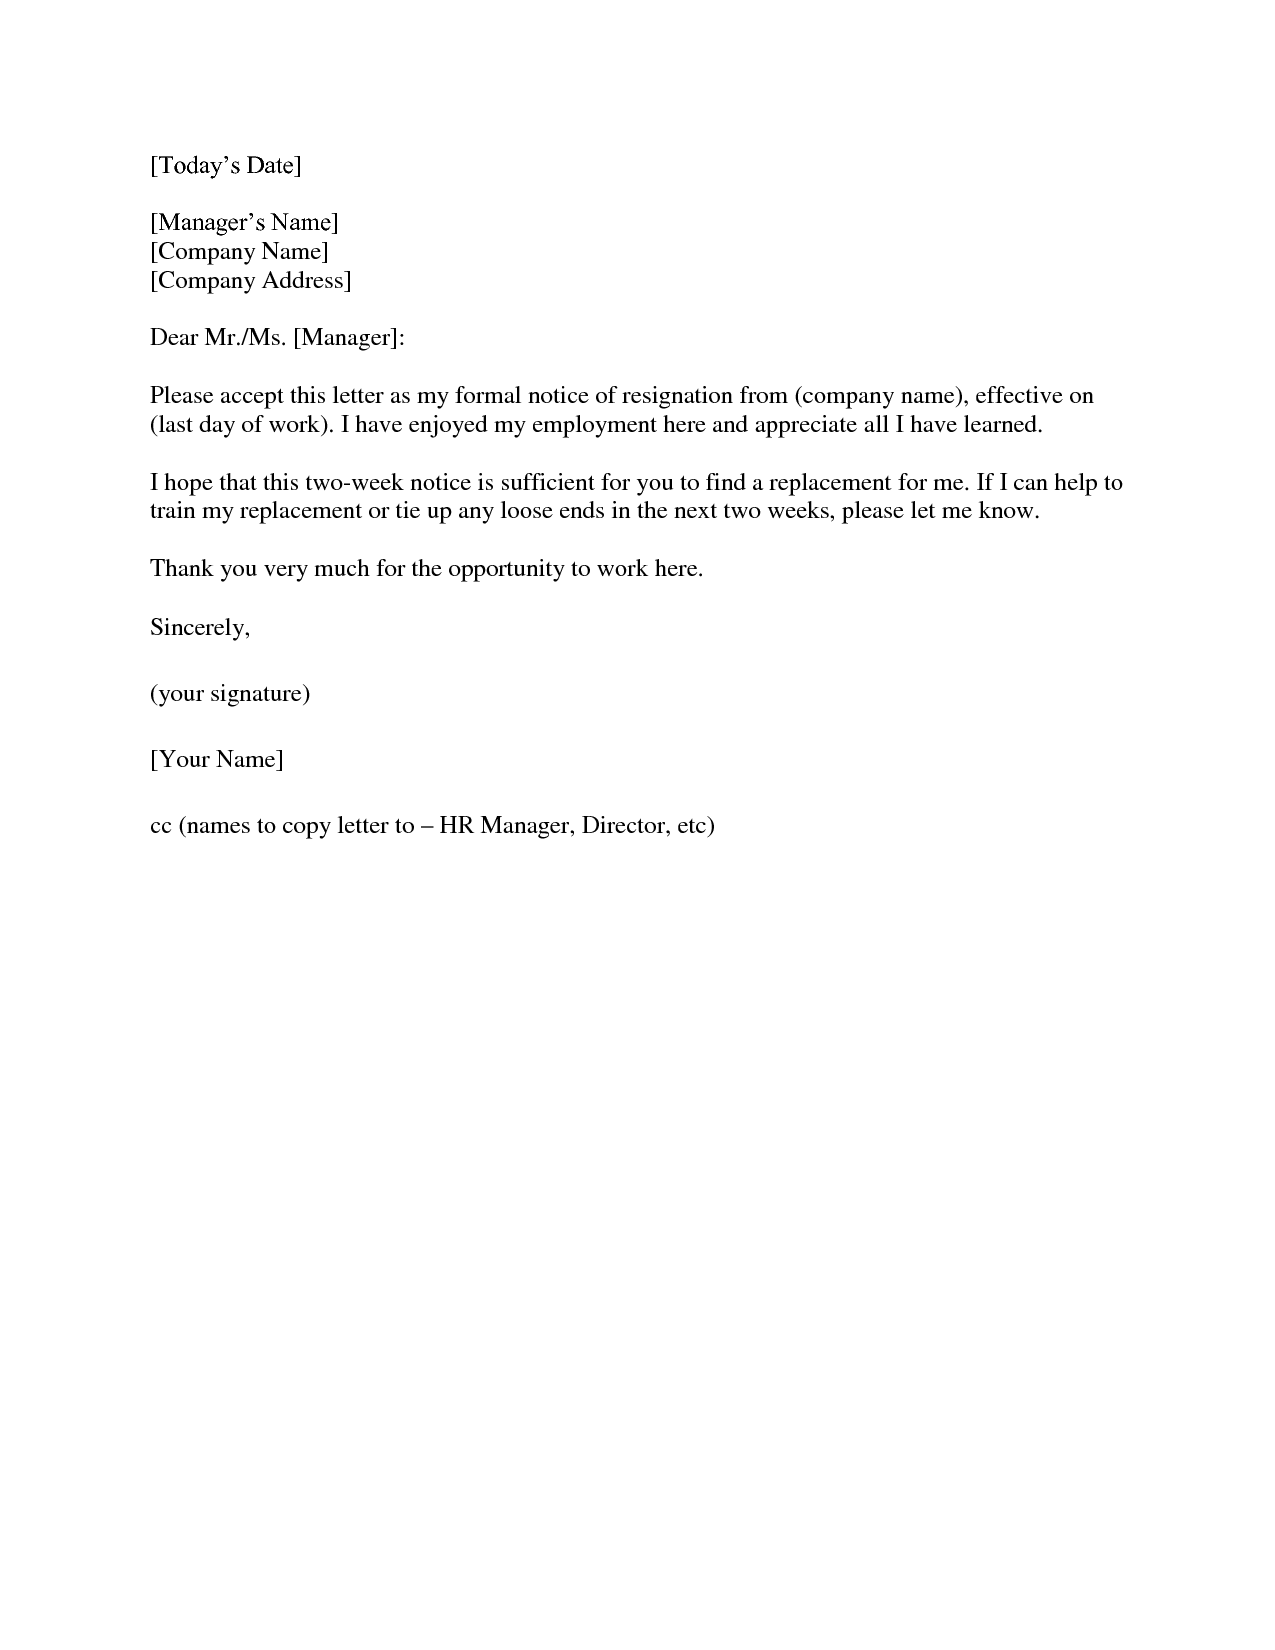 Formal 2 Week Notice Letter Resignation – Sample of Letter Resignation